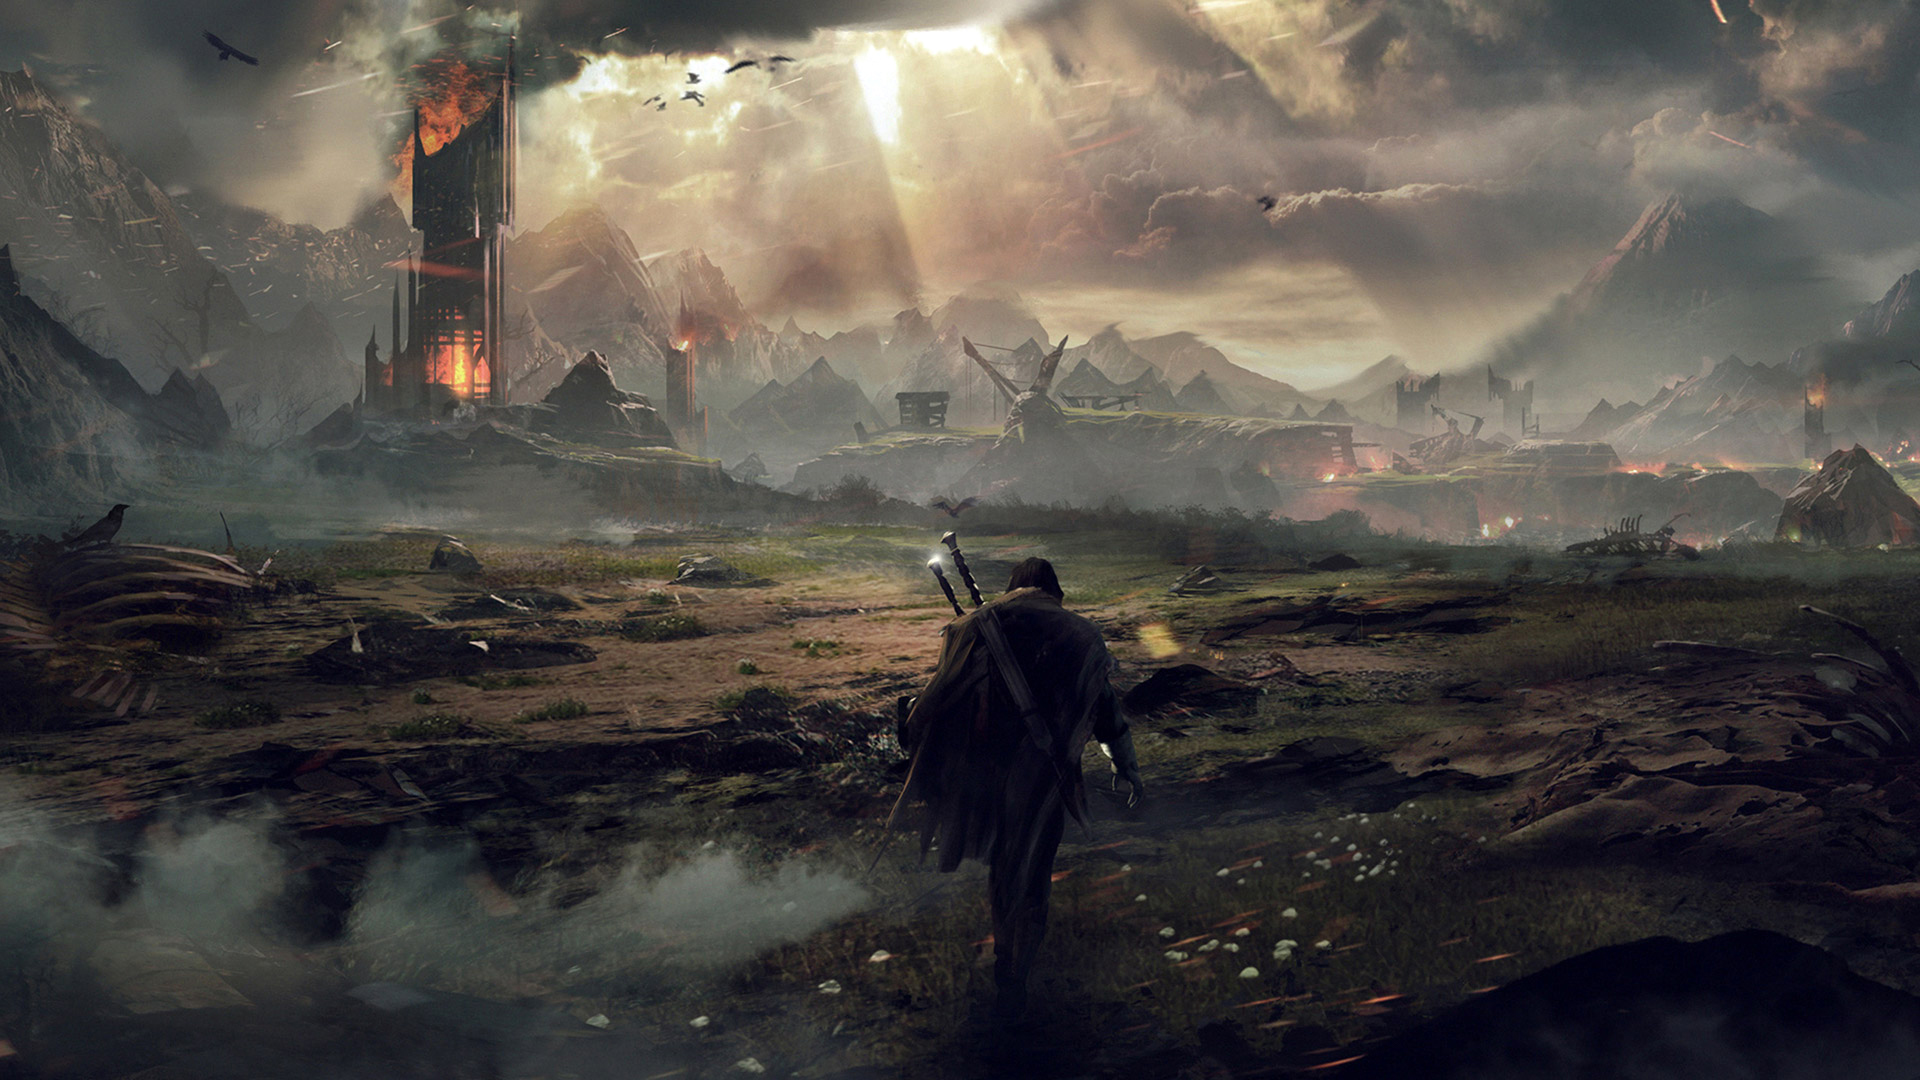 Free download Middle Earth Shadow of Mordor Game Wallpaper ...